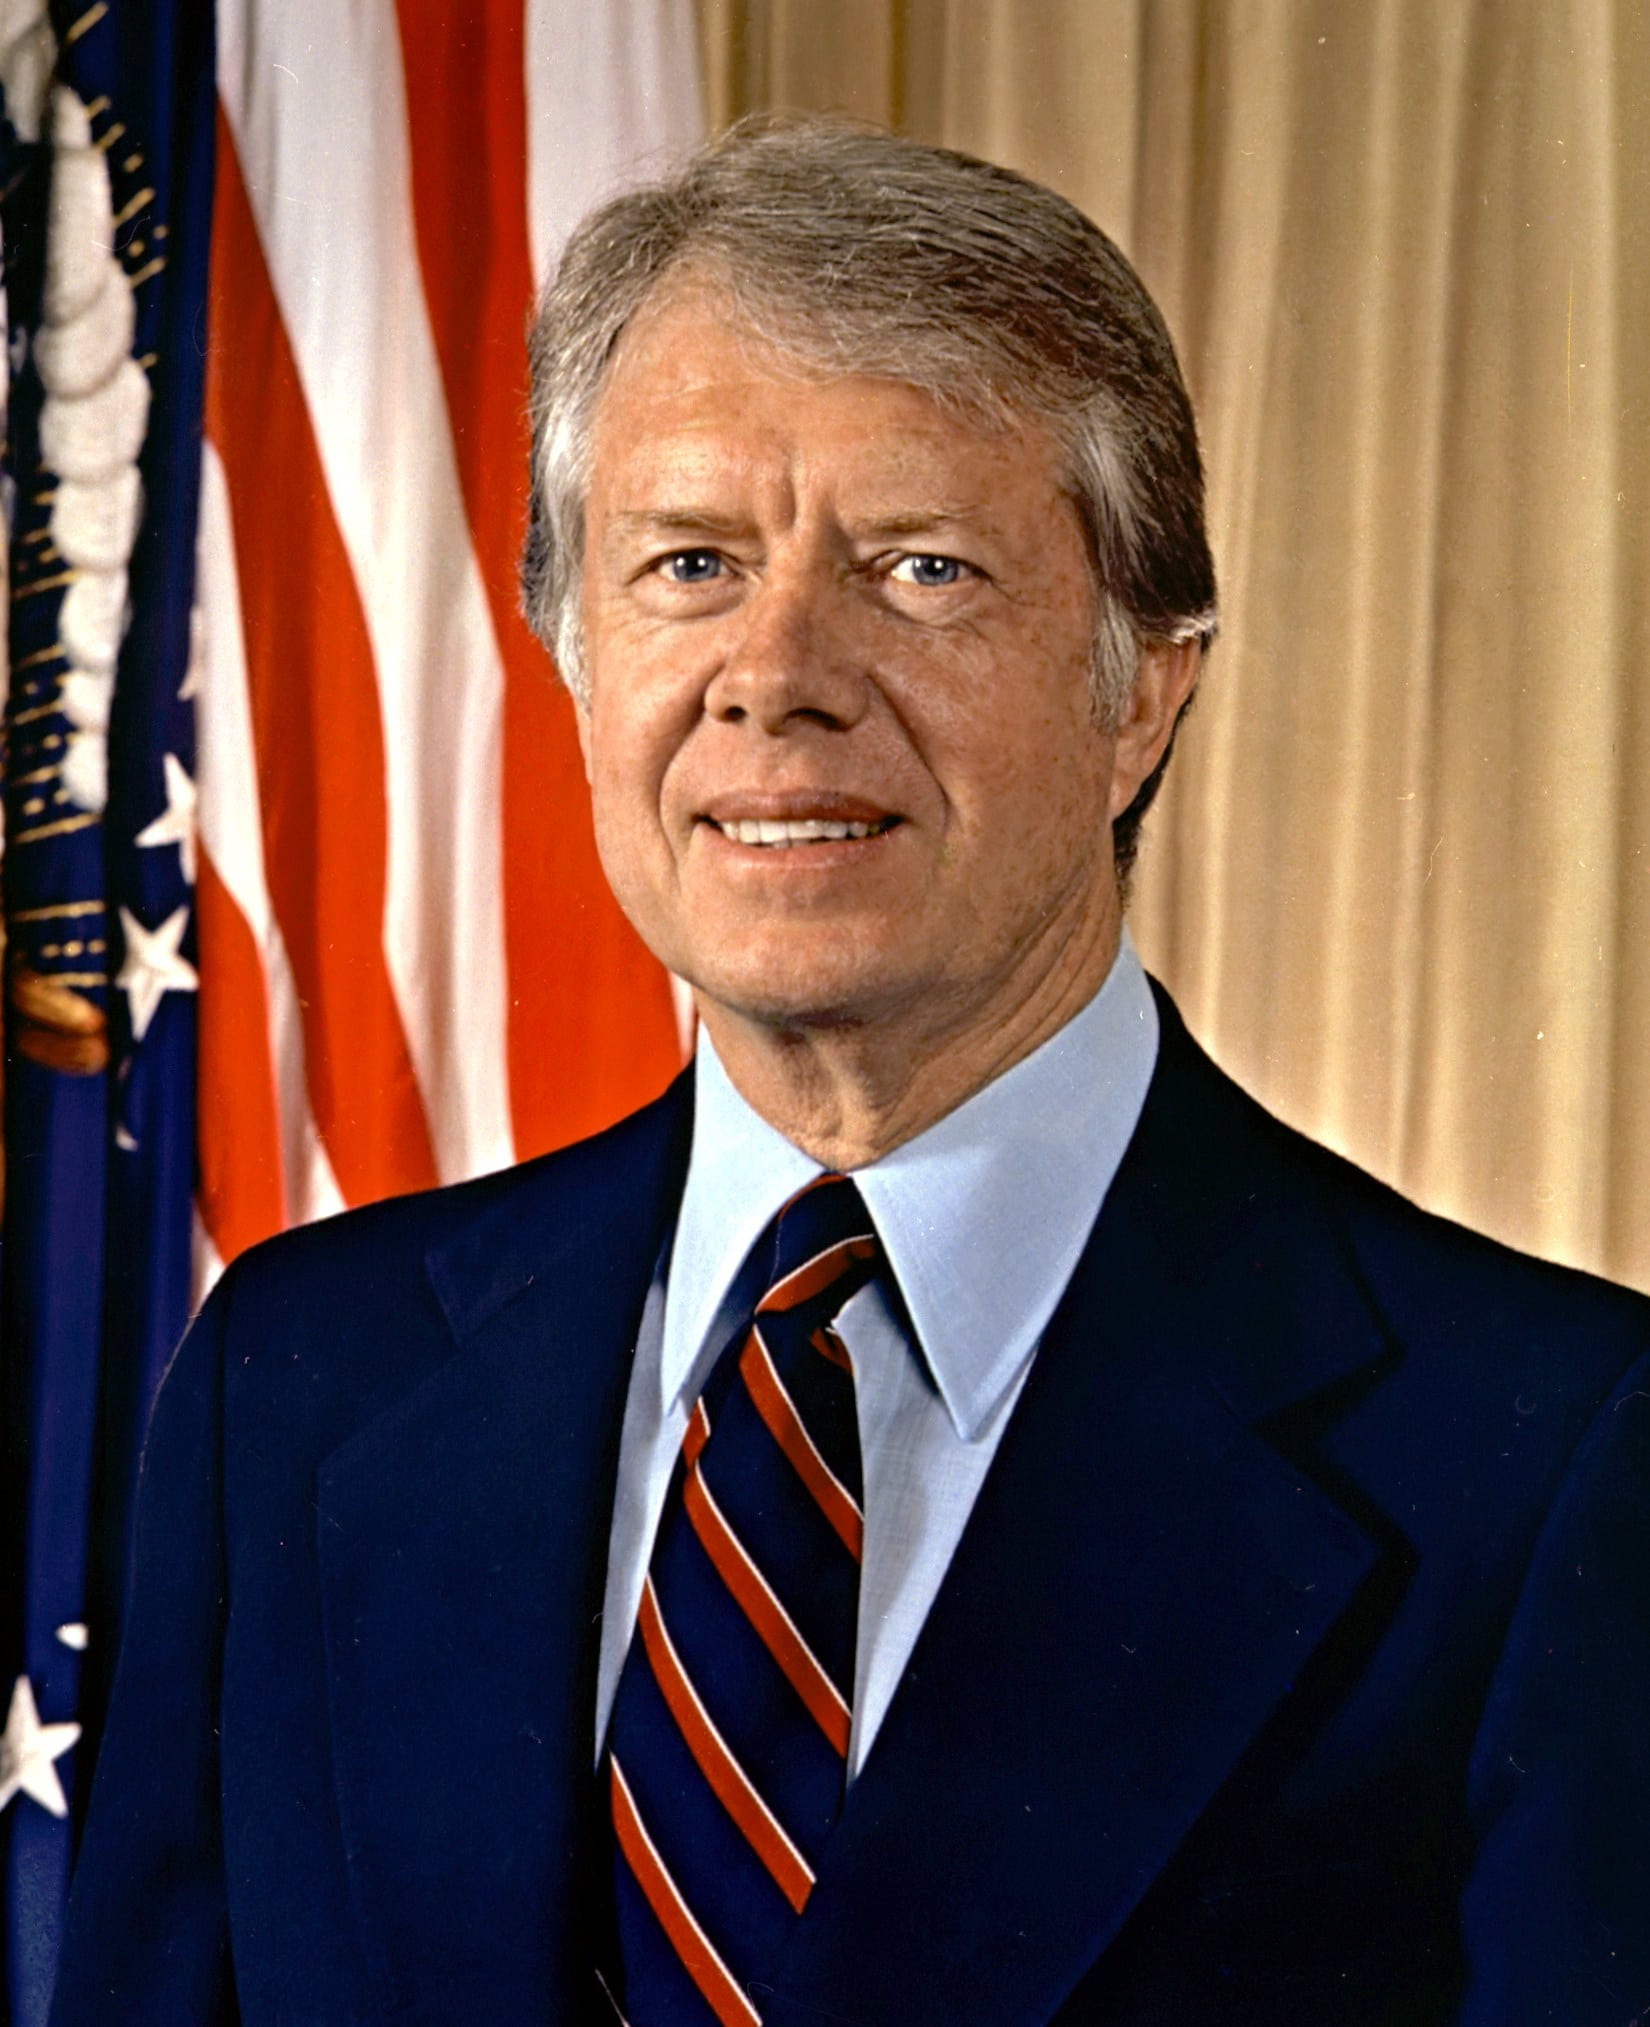 5a240abb74448e194ef645c82060caec 1 - His Very Best: Jimmy Carter, A Life